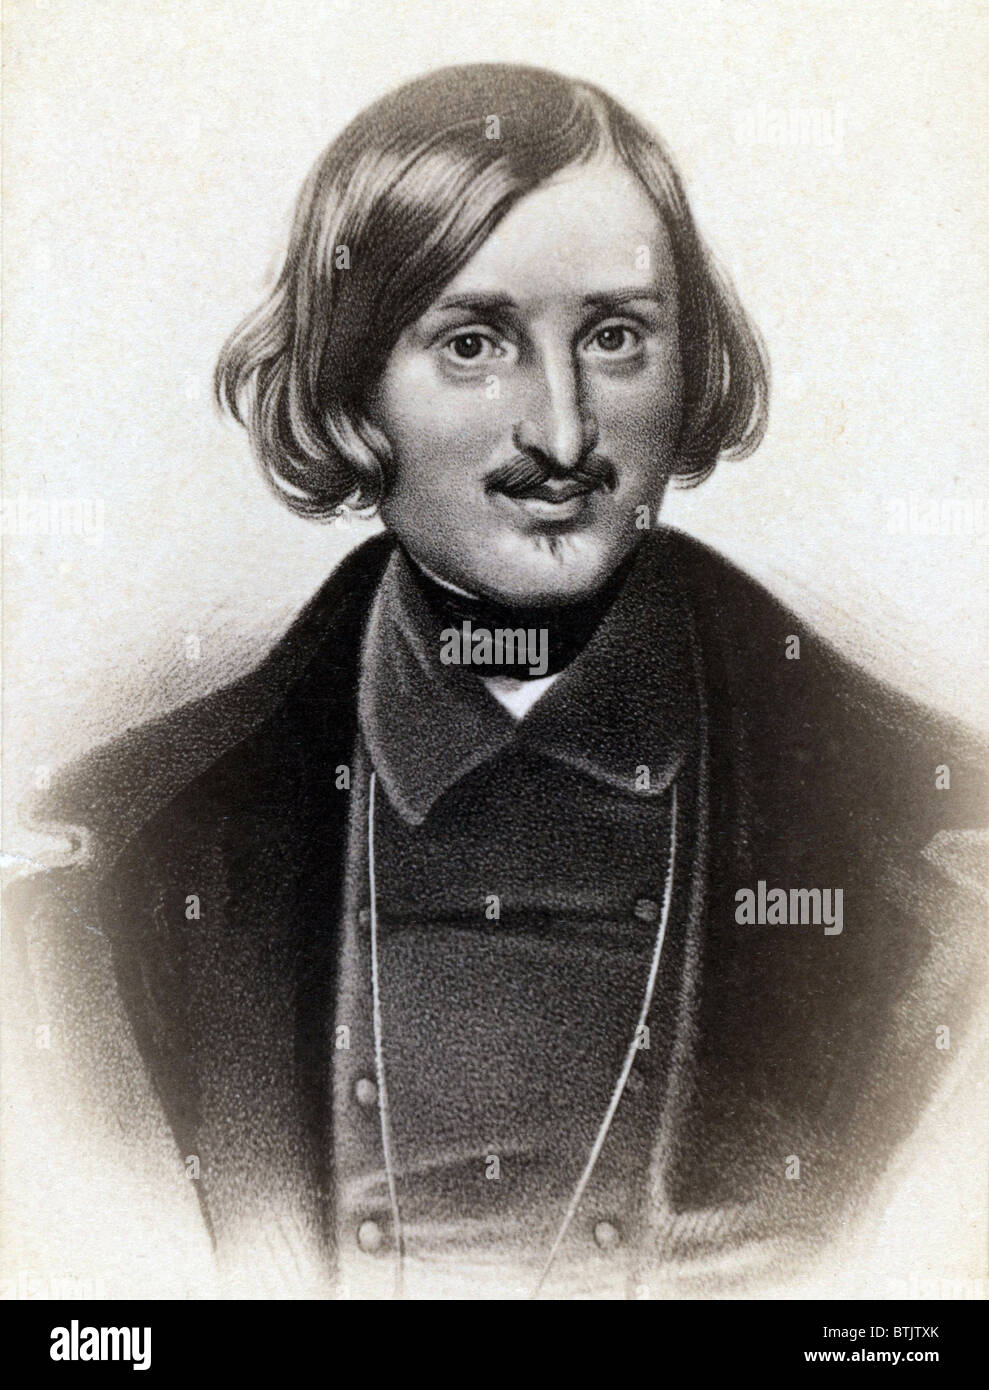 Nikolai Gogol (1809-1852) Russian writer, regarded as the father of realism in Russian literature. - Stock Image